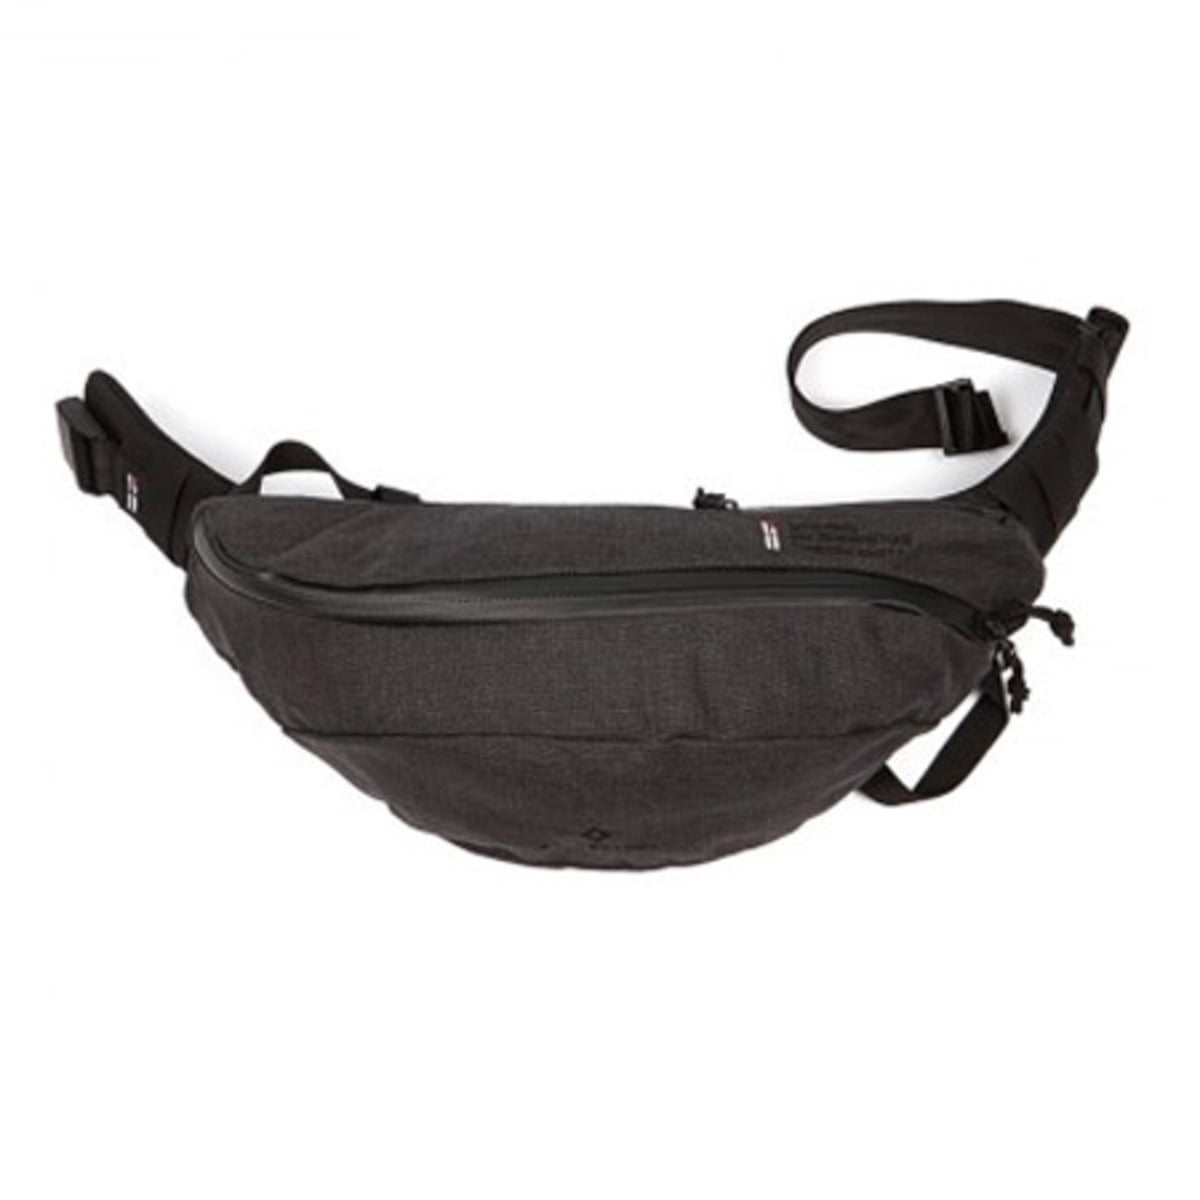 [TERG] LARGE WAIST BAG 'ALMOST BLACK'